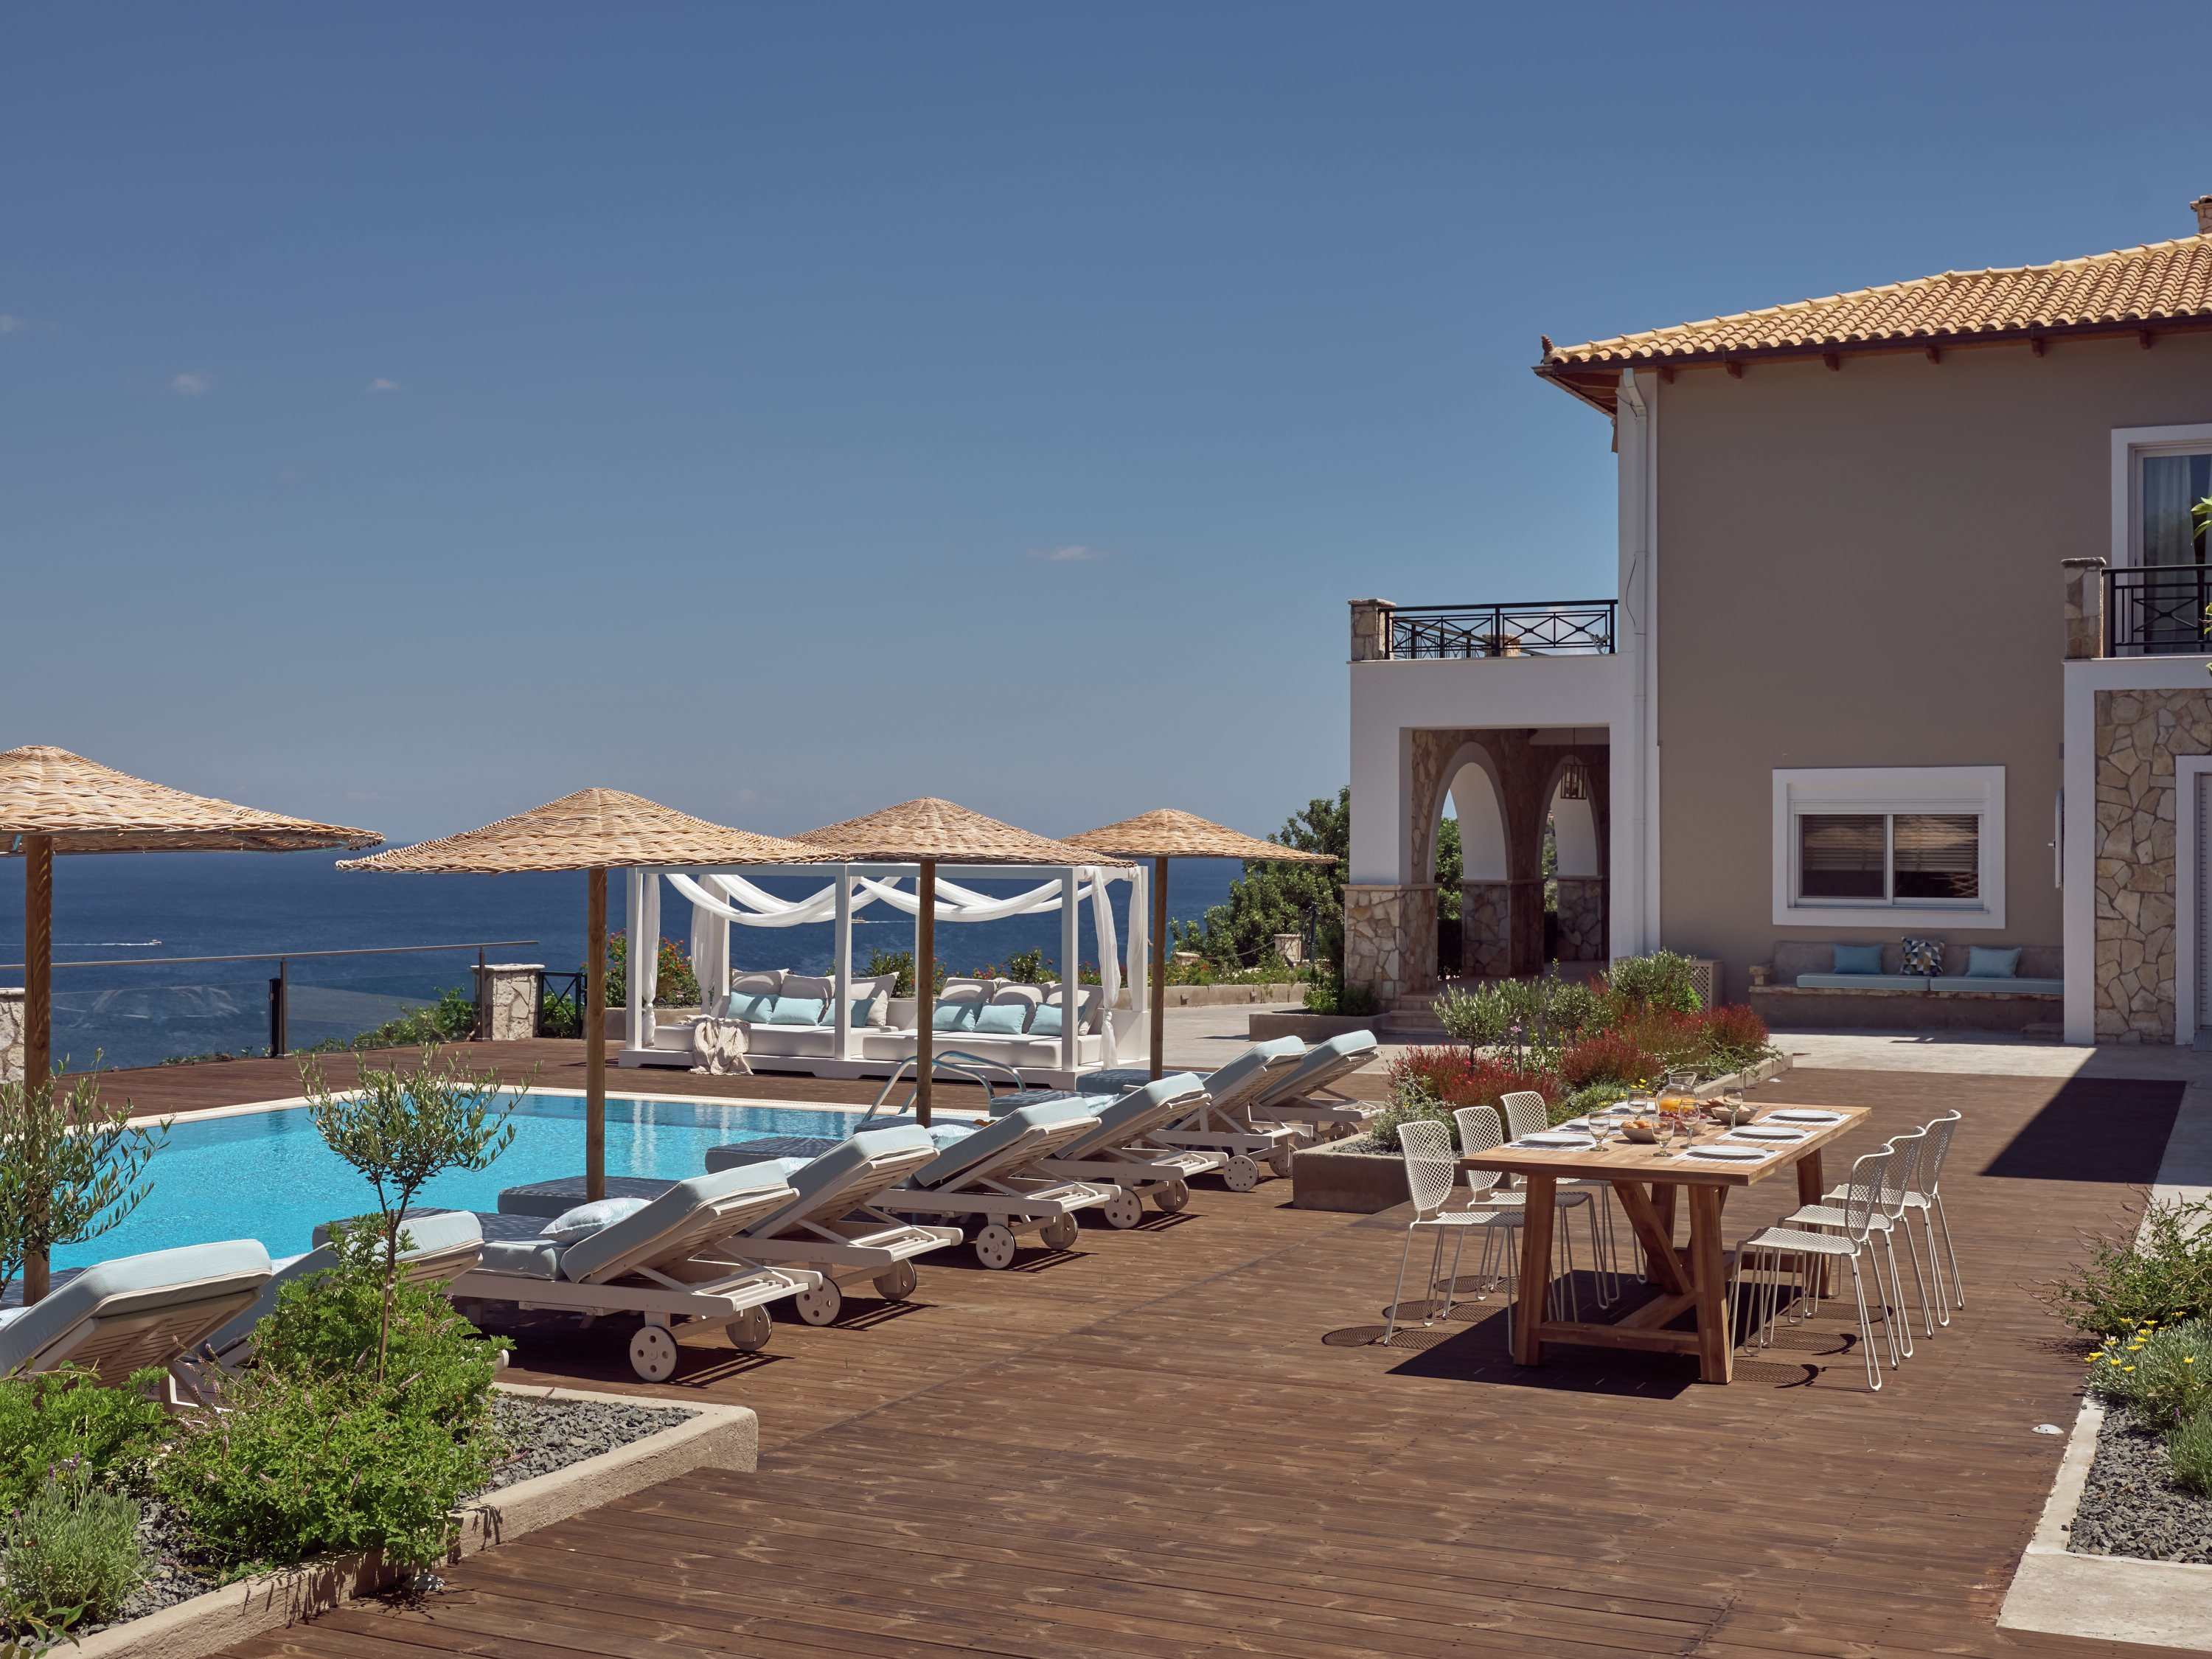 Property Image 2 - Majestic luxury villa with impressive facilities